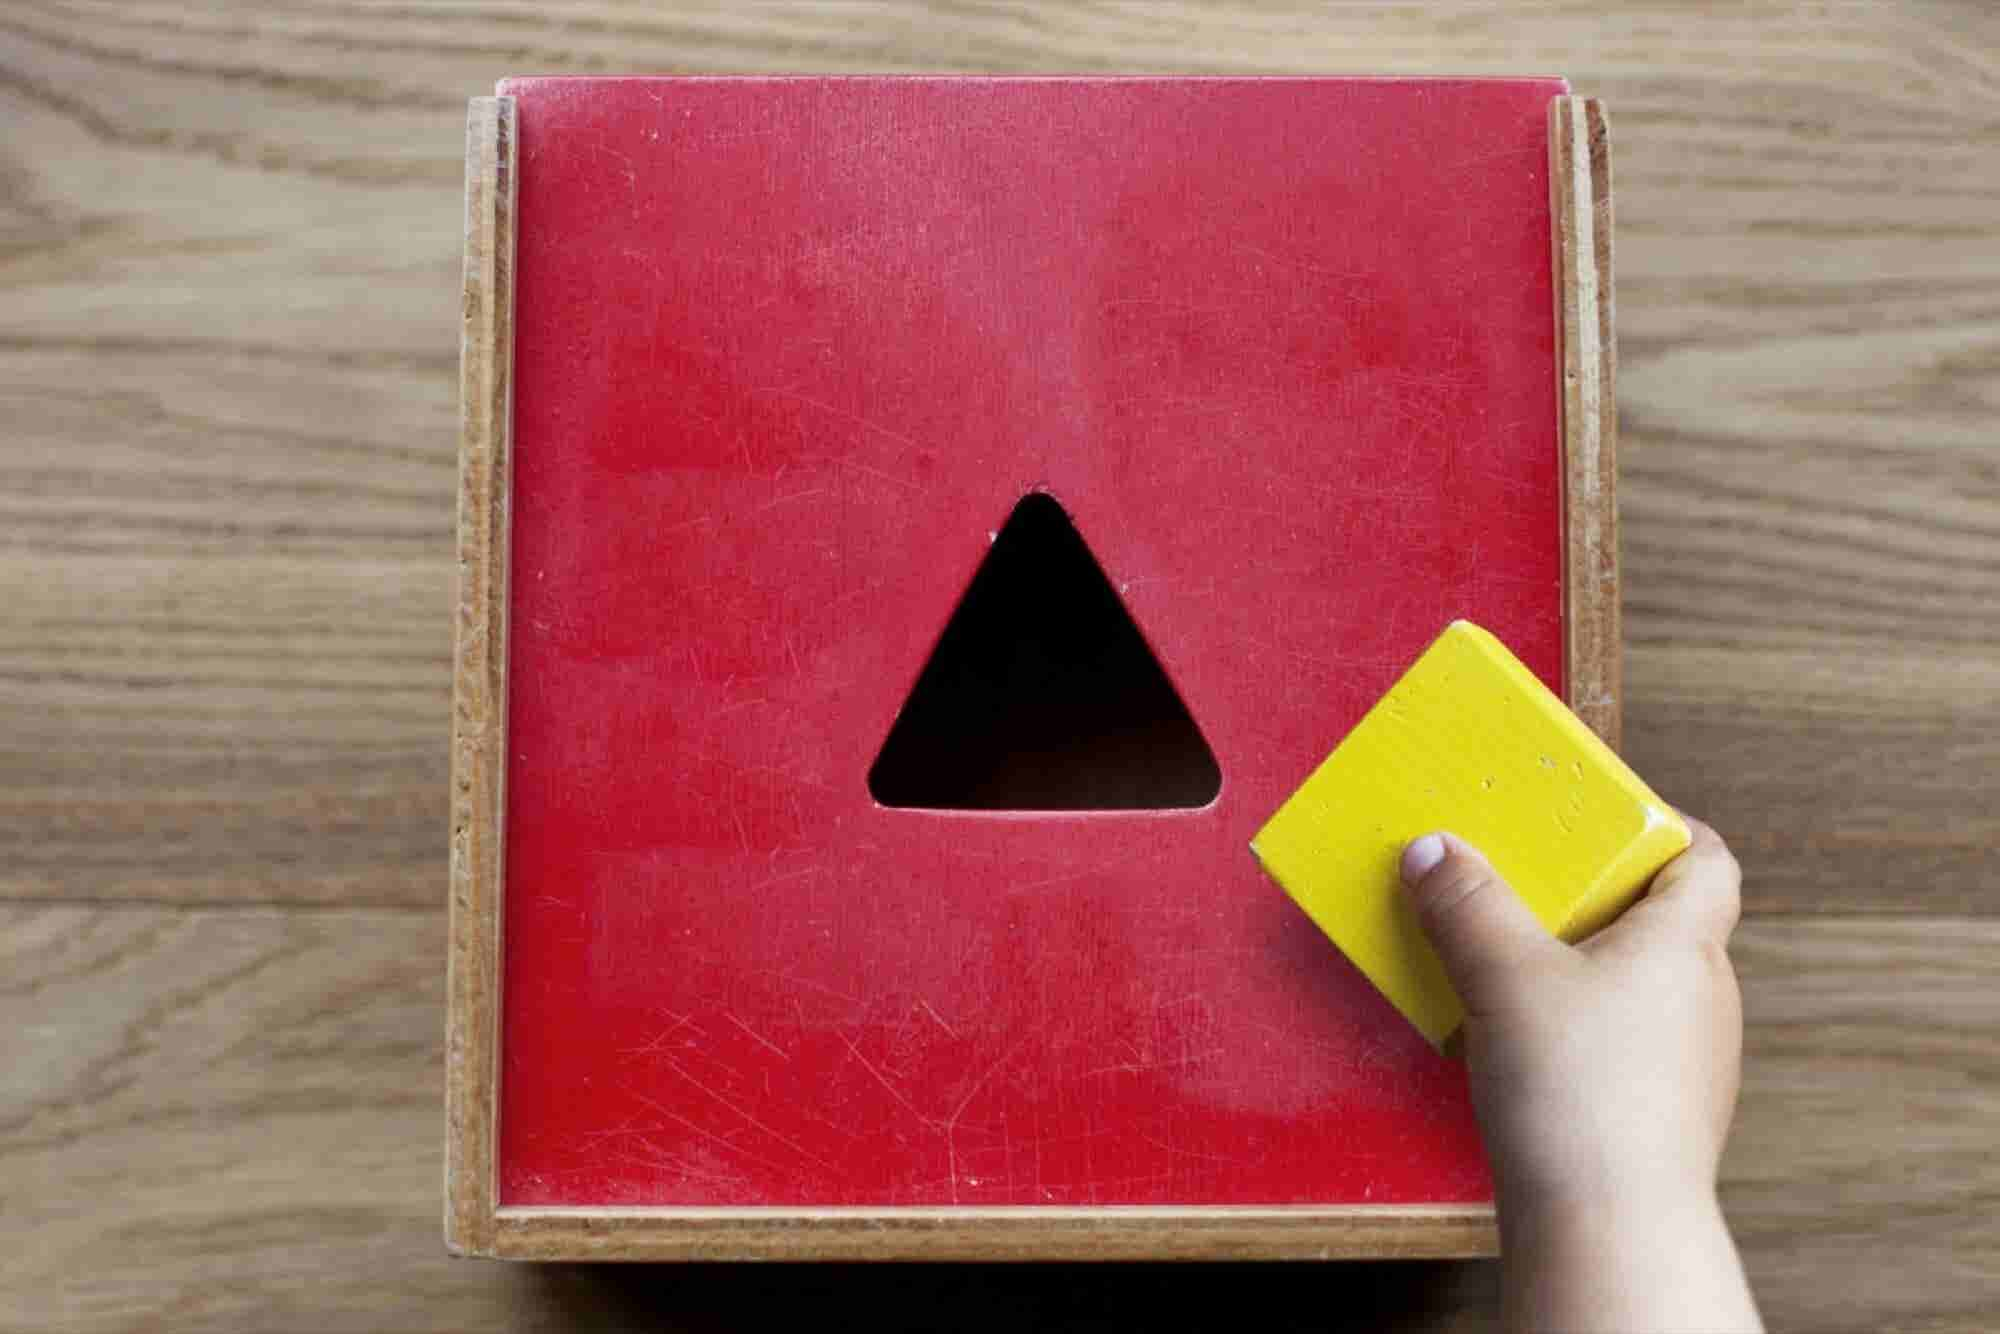 7 Easy Steps for Launching a Venture that Will Fail